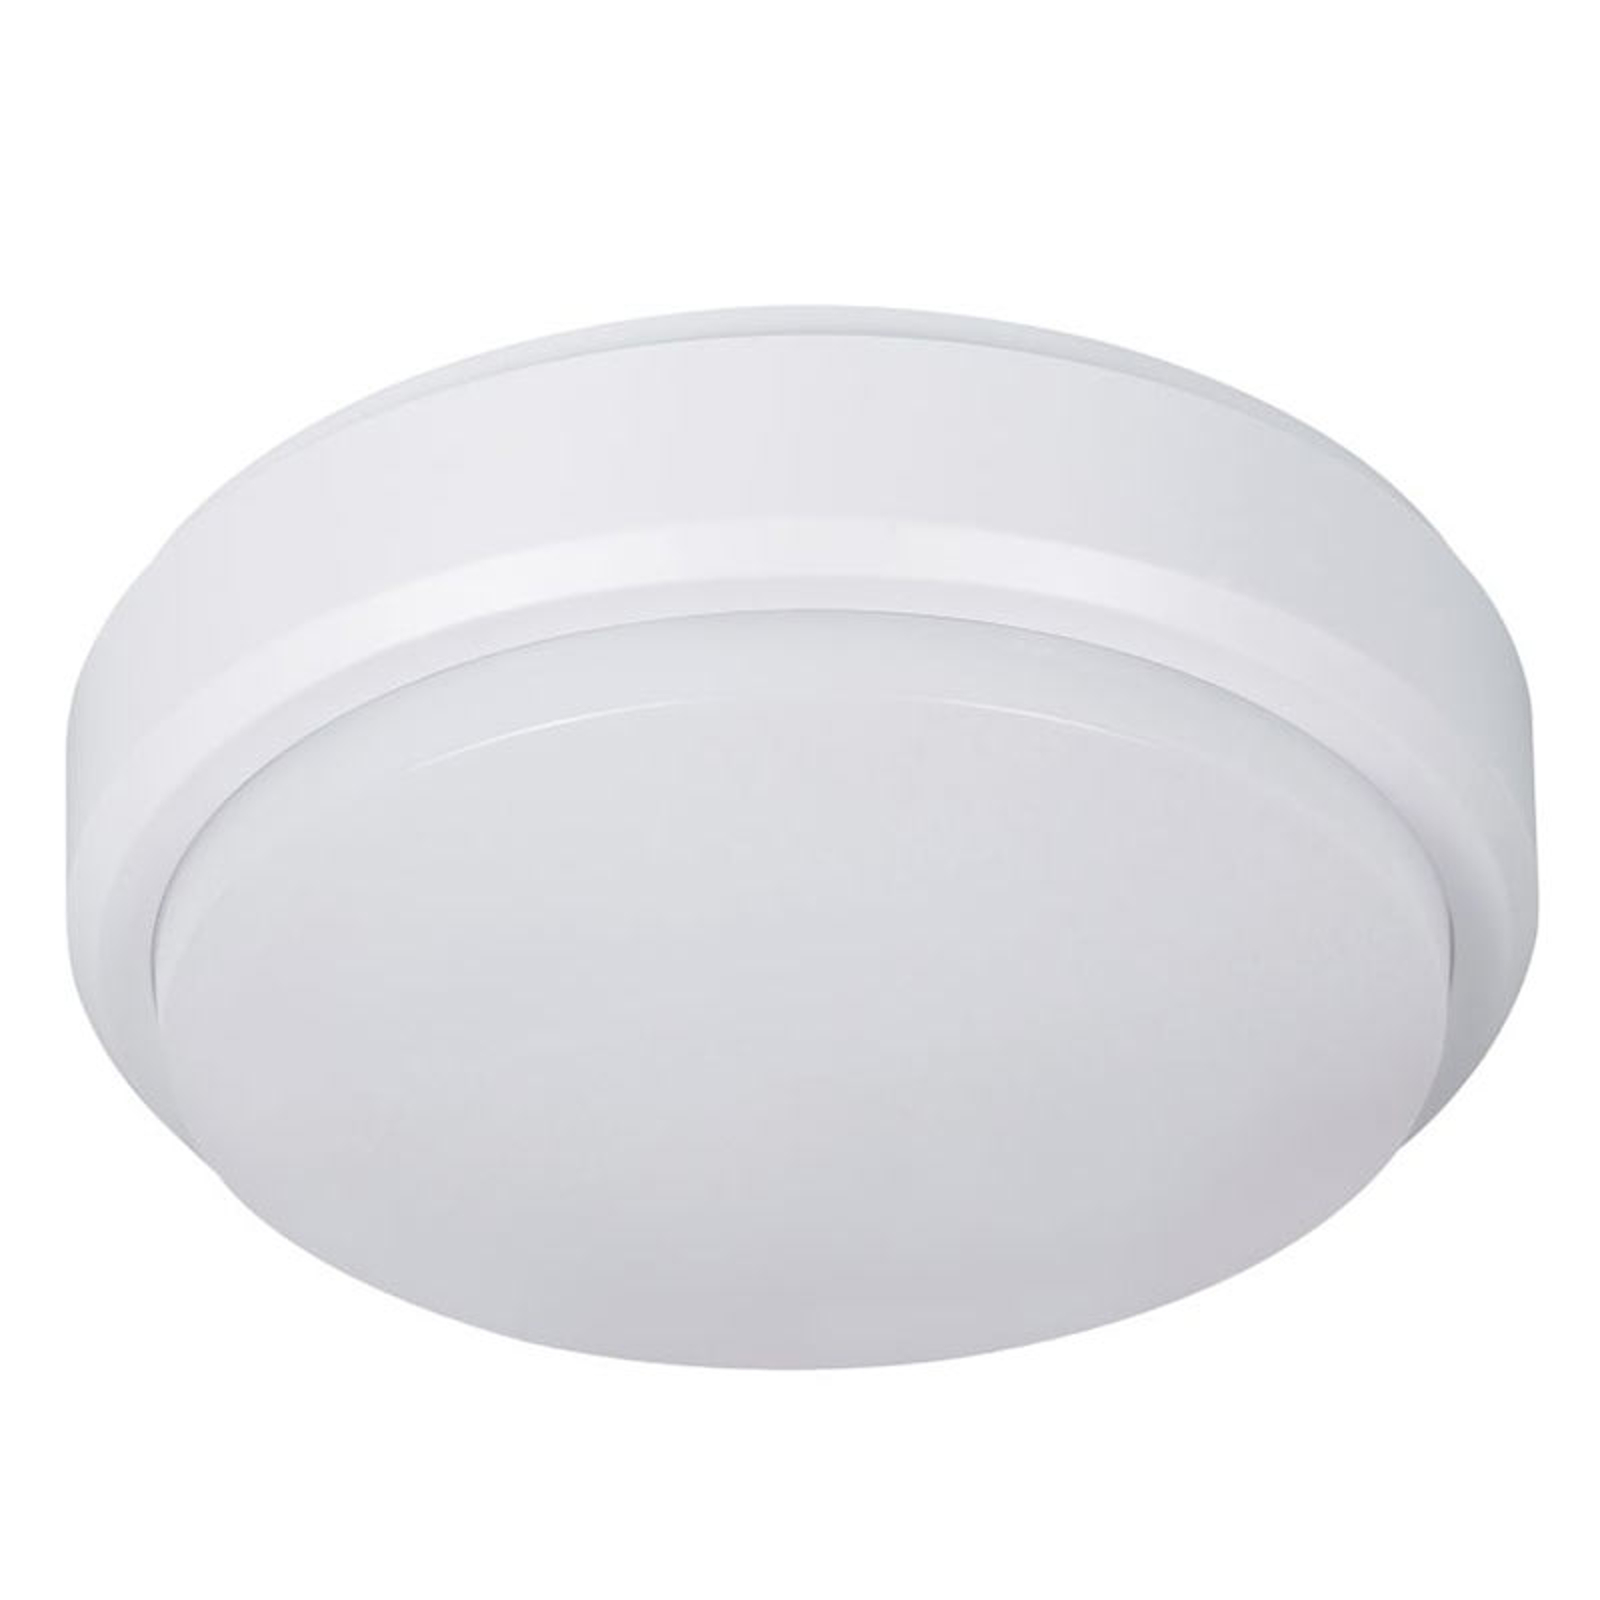 Round Bulkhead LED ceiling lamp with IP54_8559271_1